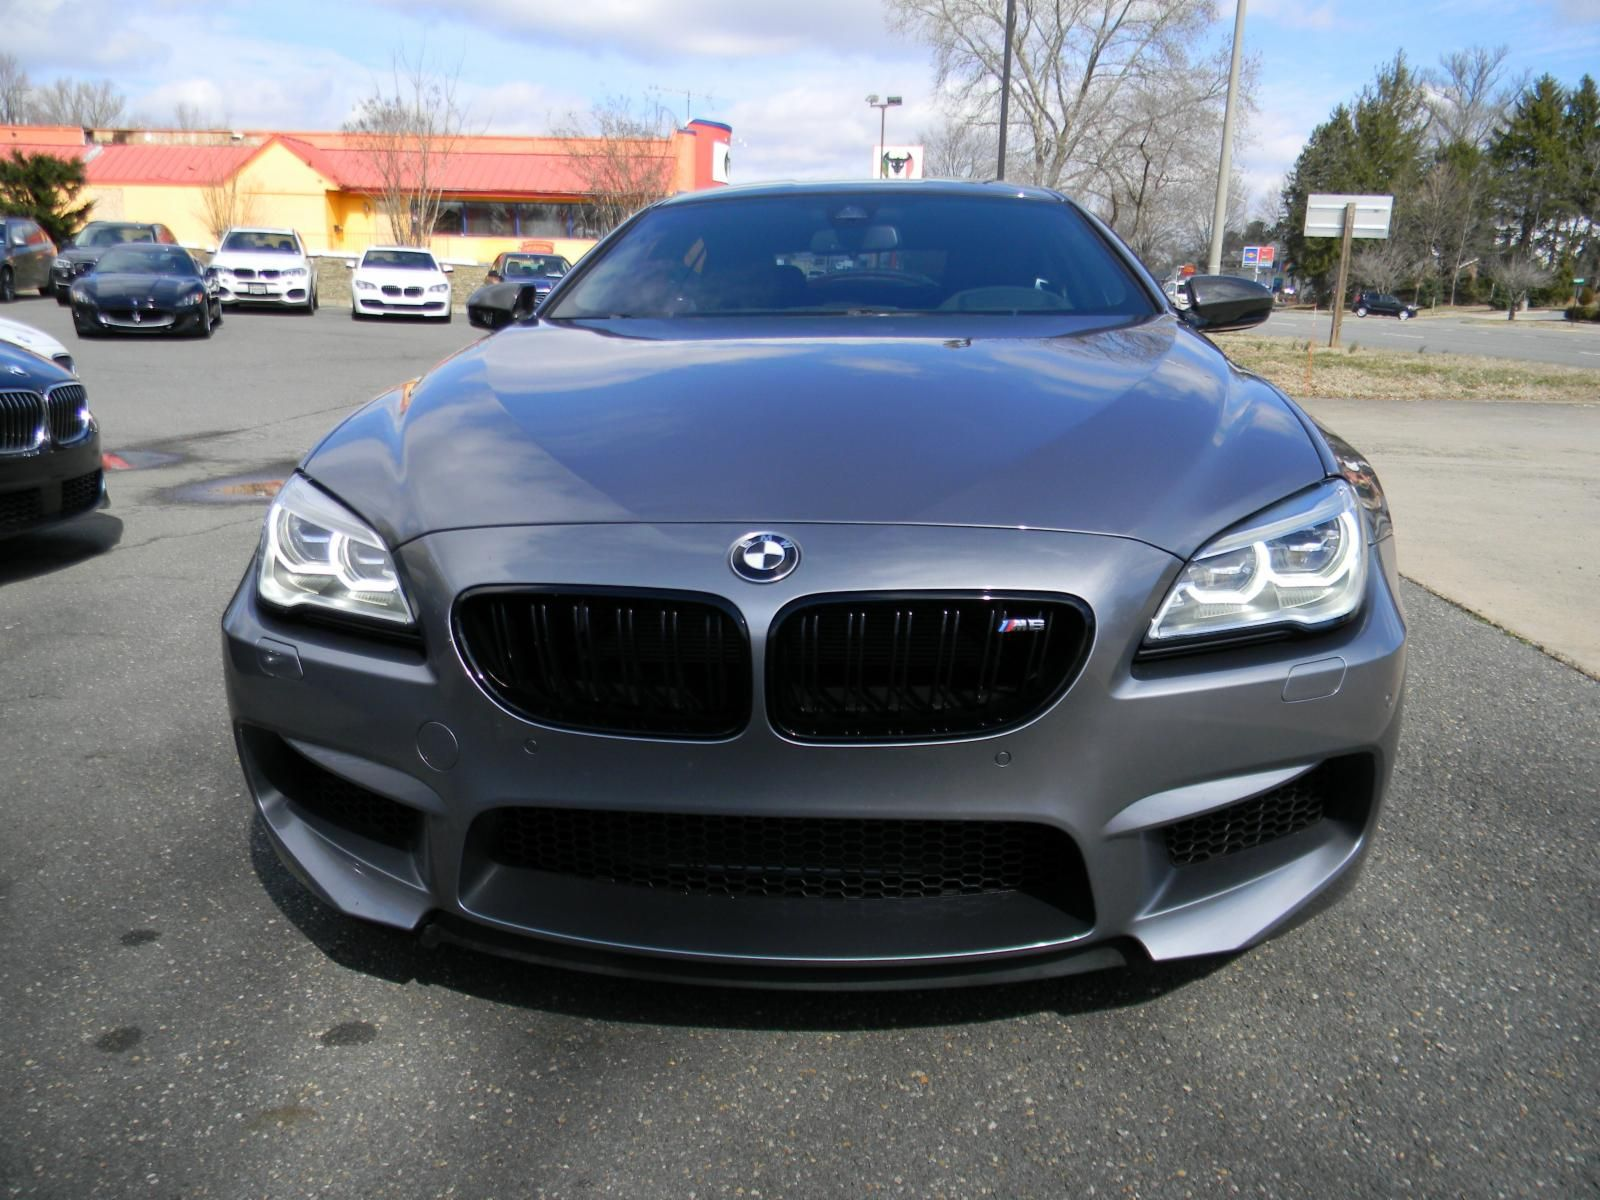 2016 BMW M6 - Used Car Auction - Car Export | AuctionXM